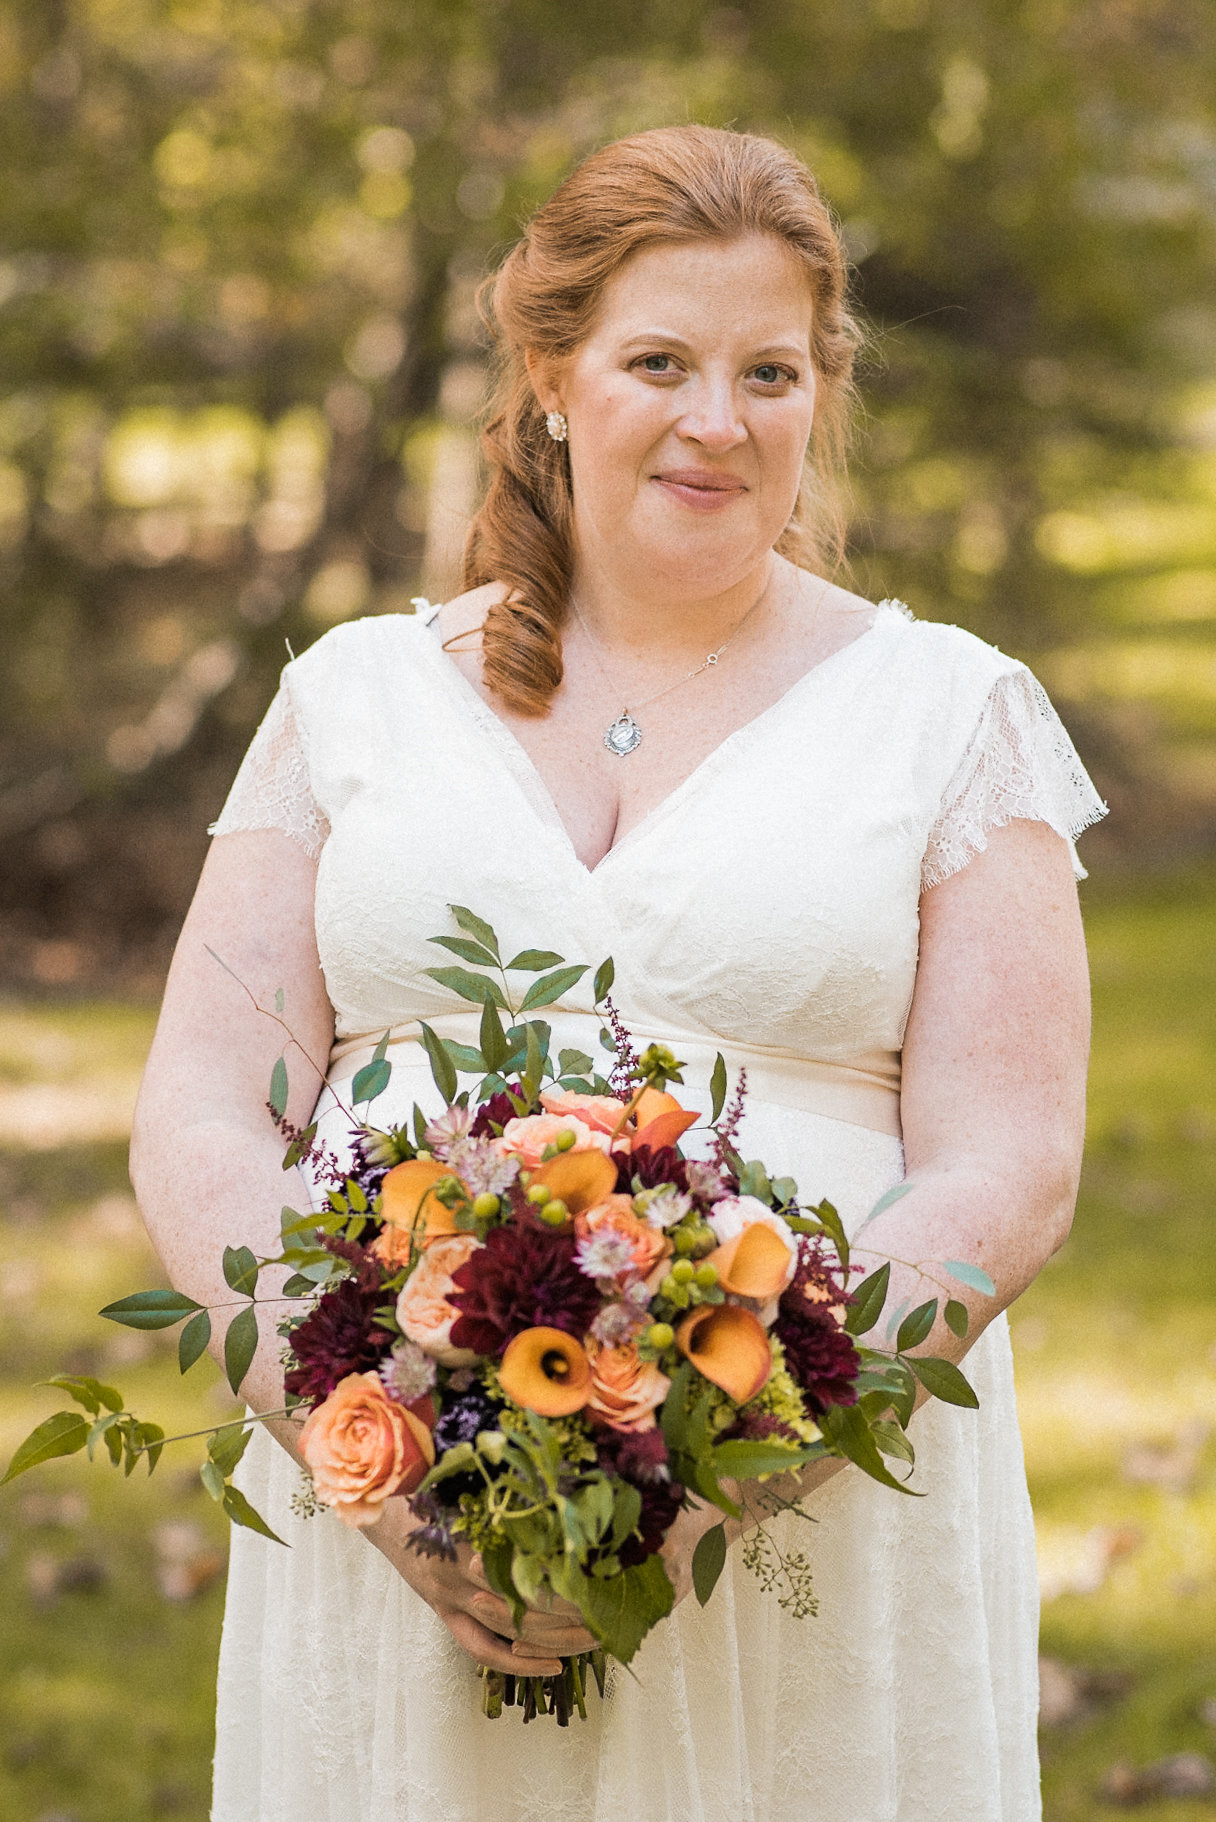 Bride holding fall bouquet